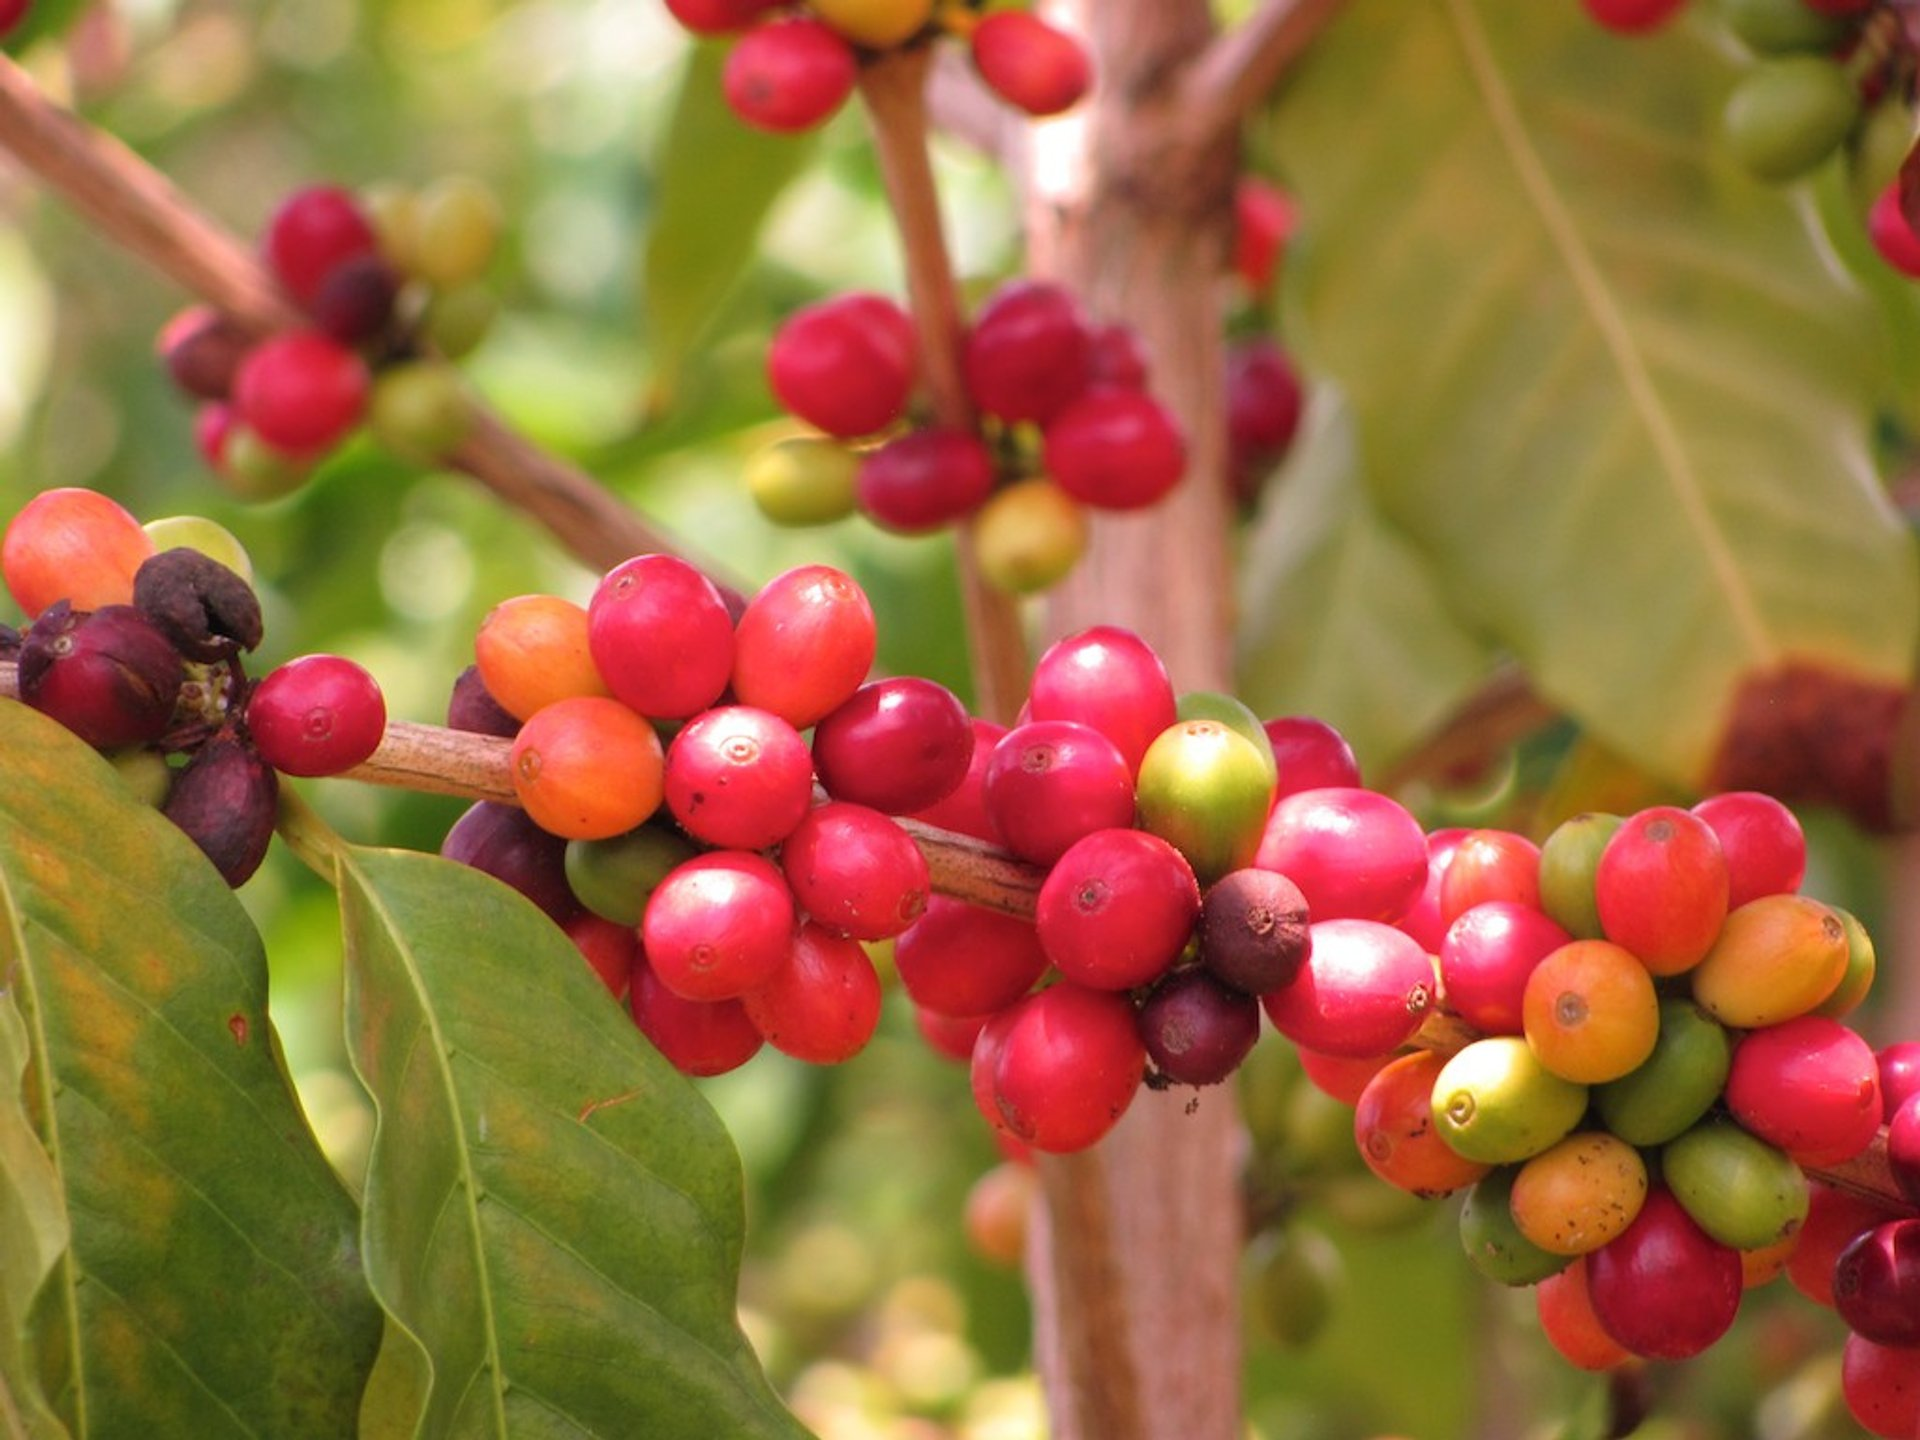 Kona Coffee Harvest in Hawaii 2019 - Best Time